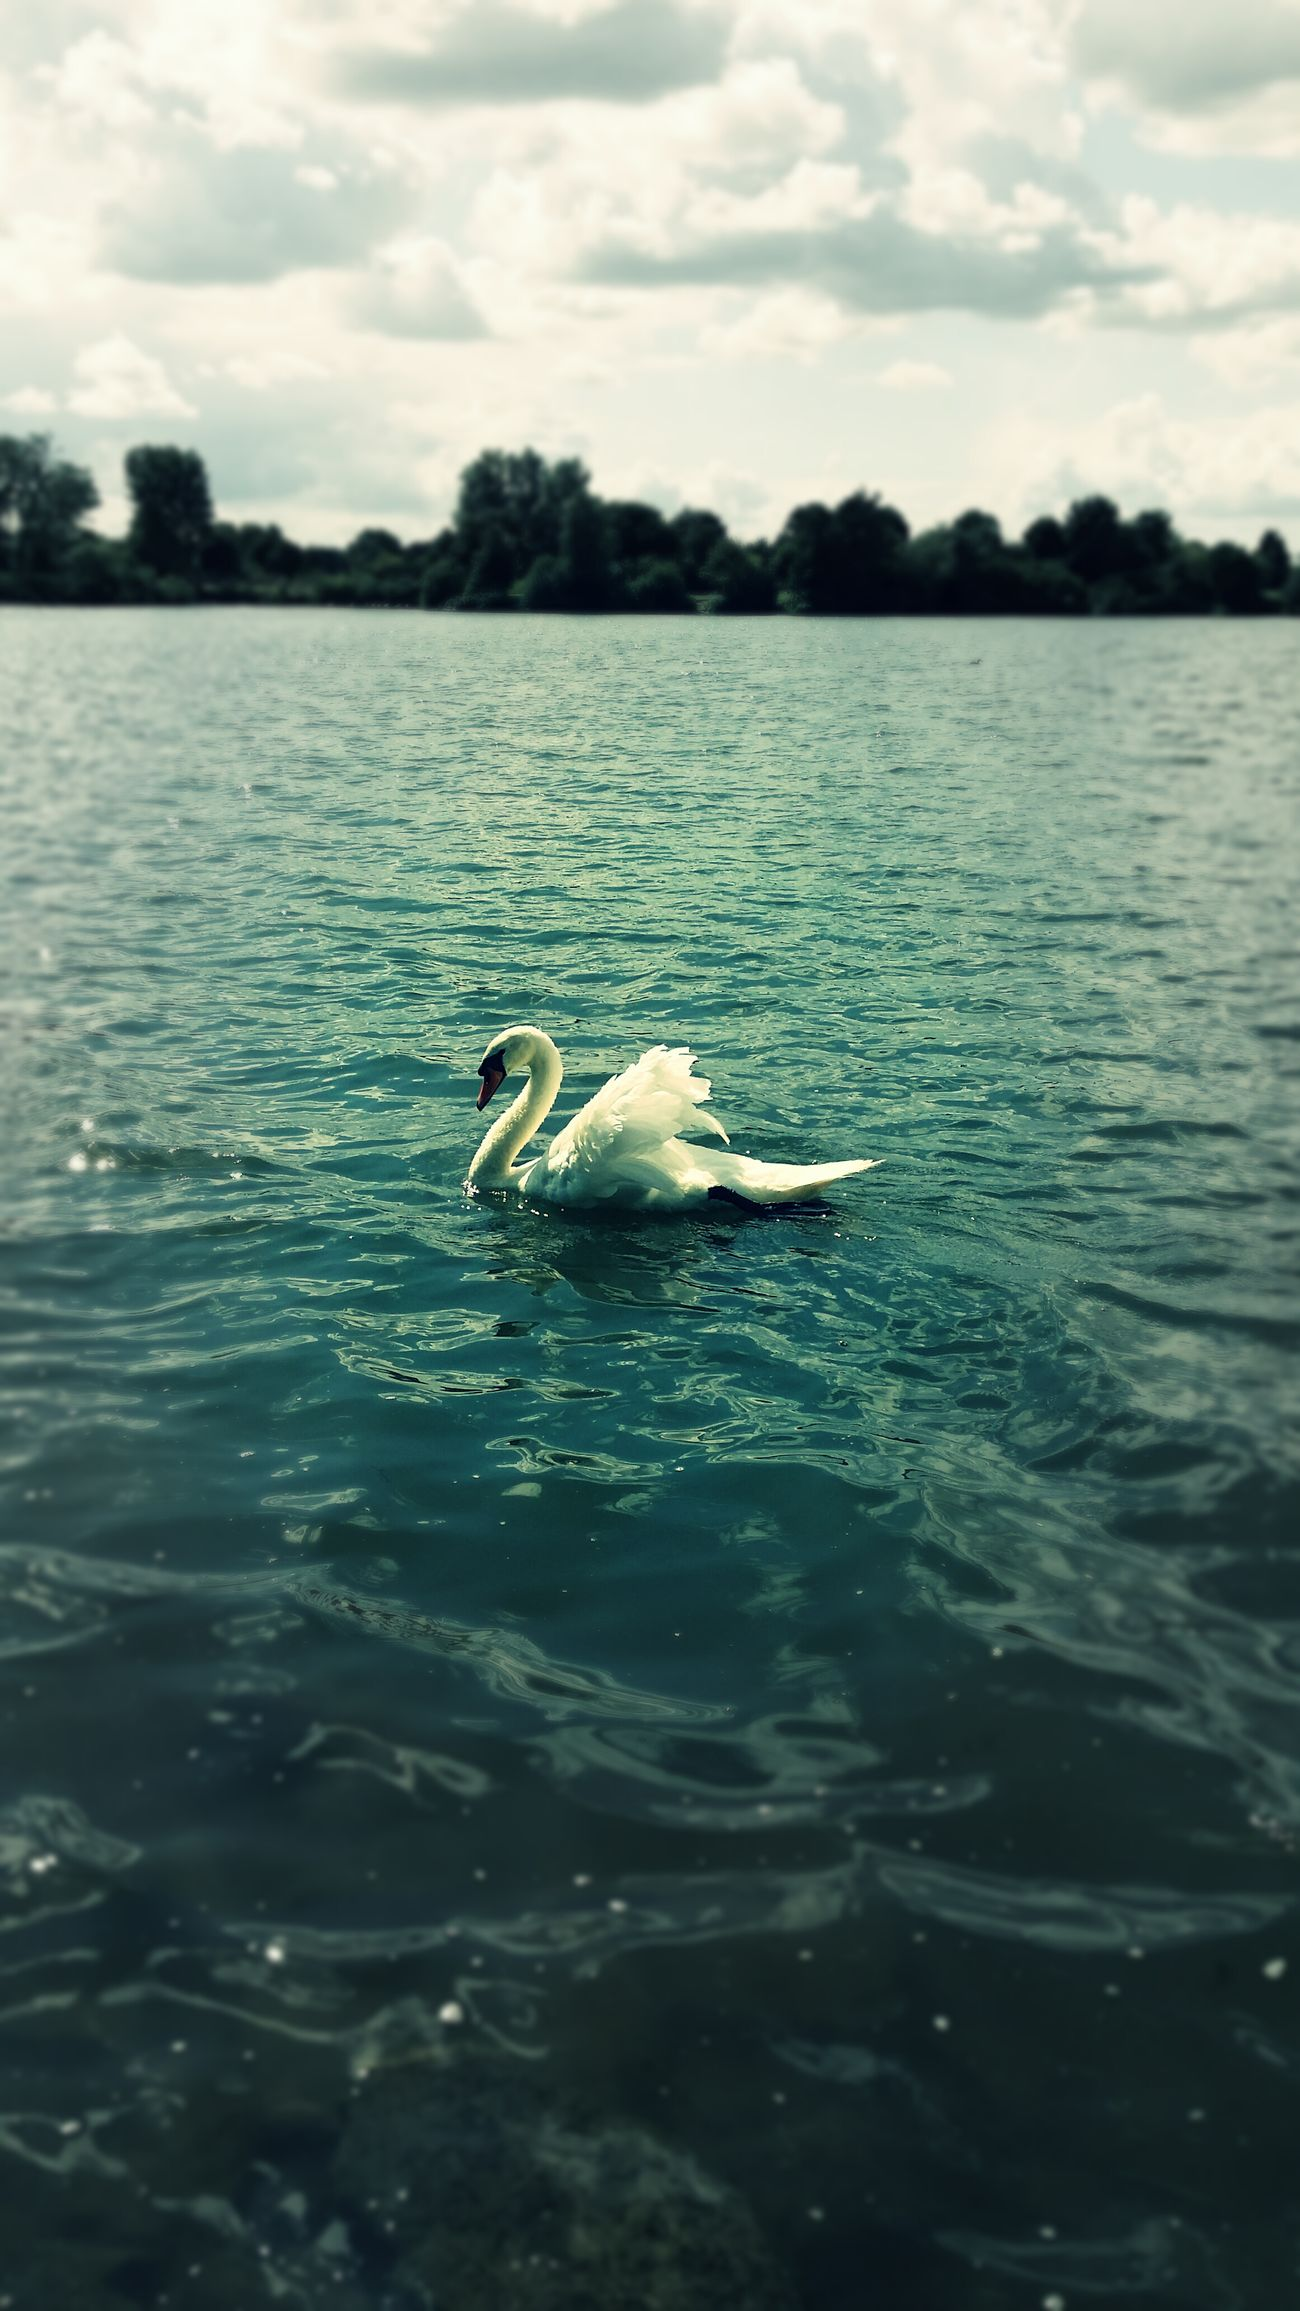 Swan Enjoying Nature Bird Photography Mobile Photography